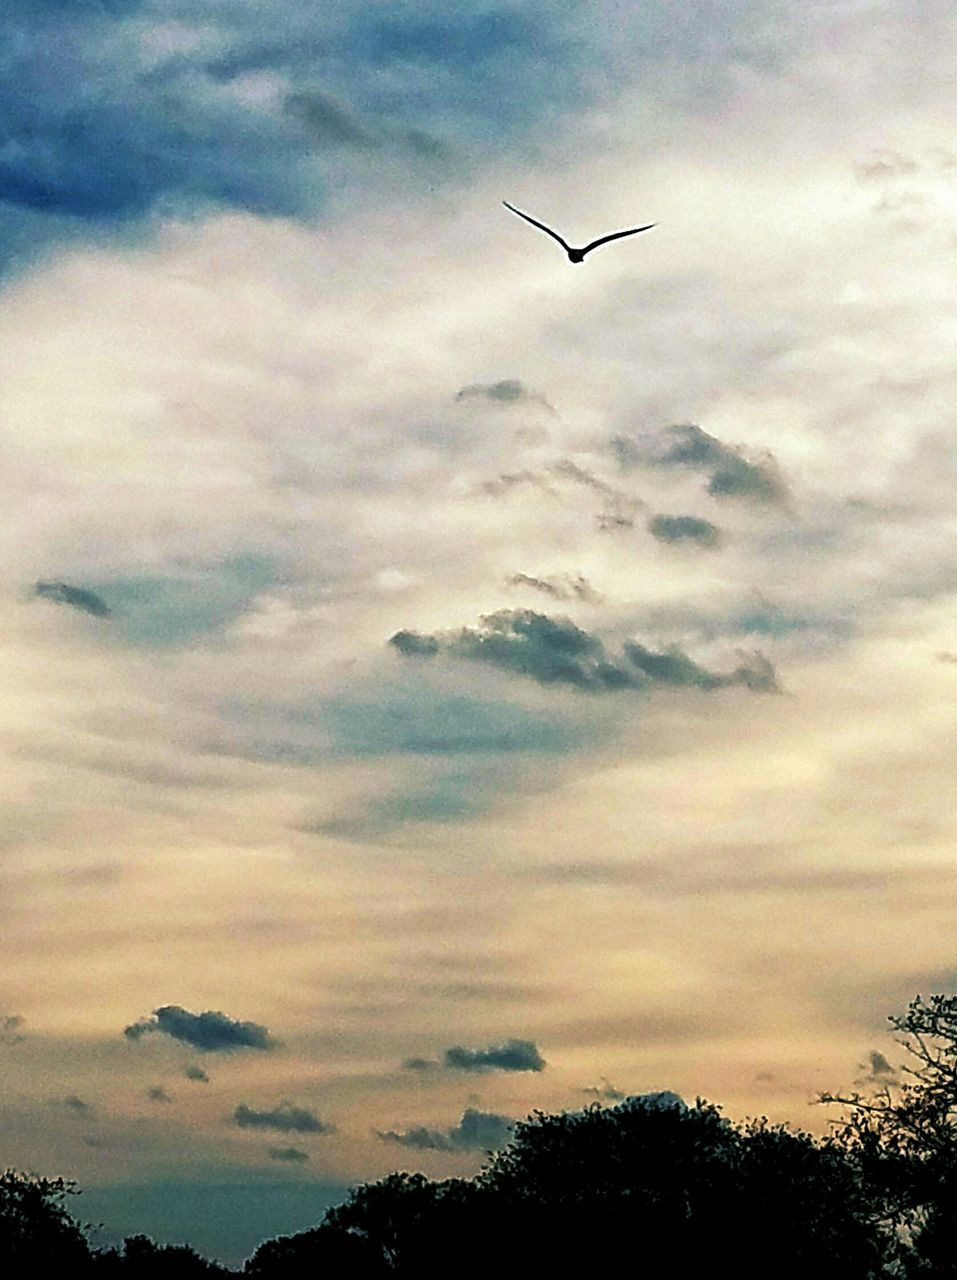 flying, sky, cloud - sky, silhouette, tree, low angle view, animal themes, bird, mid-air, one animal, animals in the wild, sunset, nature, beauty in nature, outdoors, no people, spread wings, animal wildlife, scenics, day